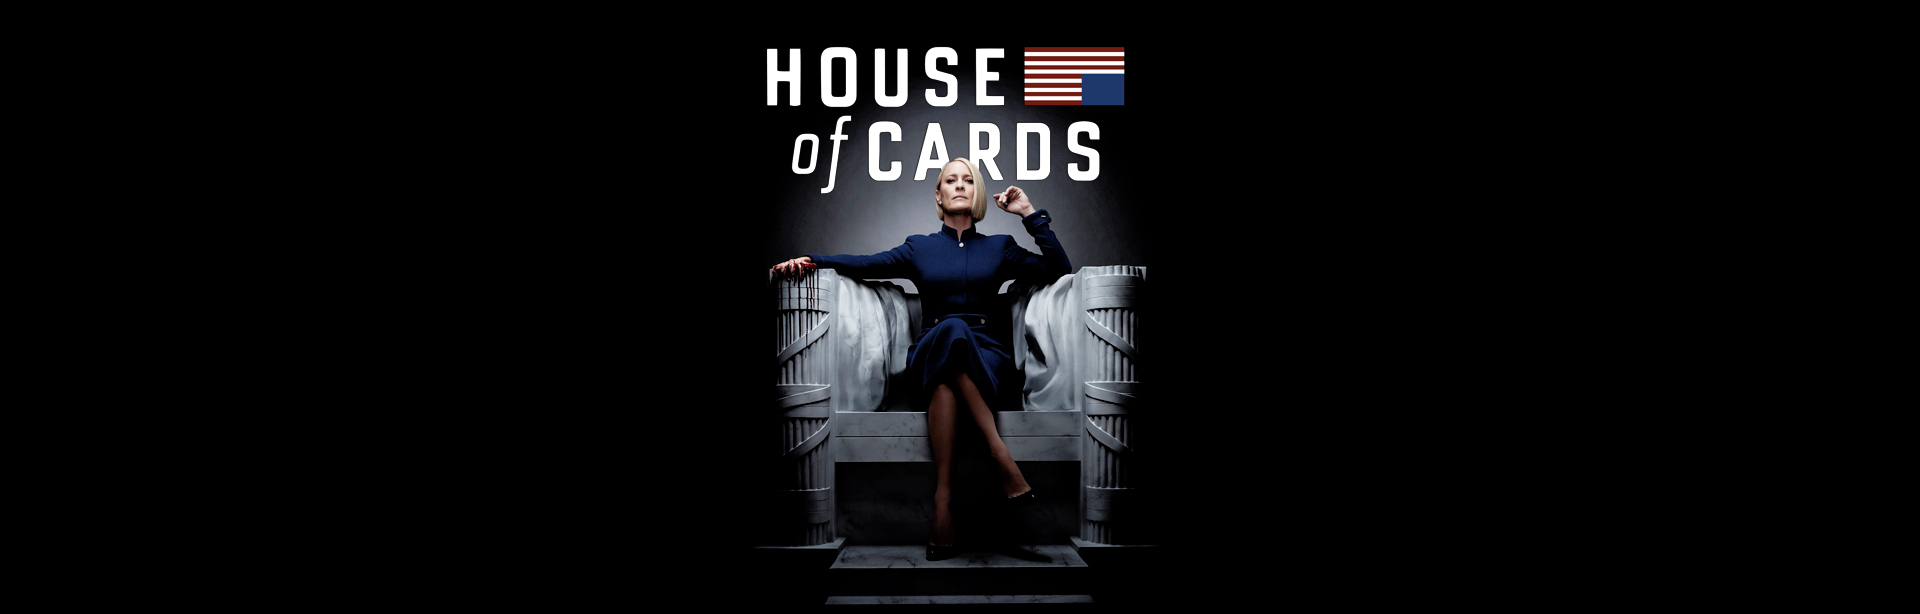 House of Cards - De Wolfe Music